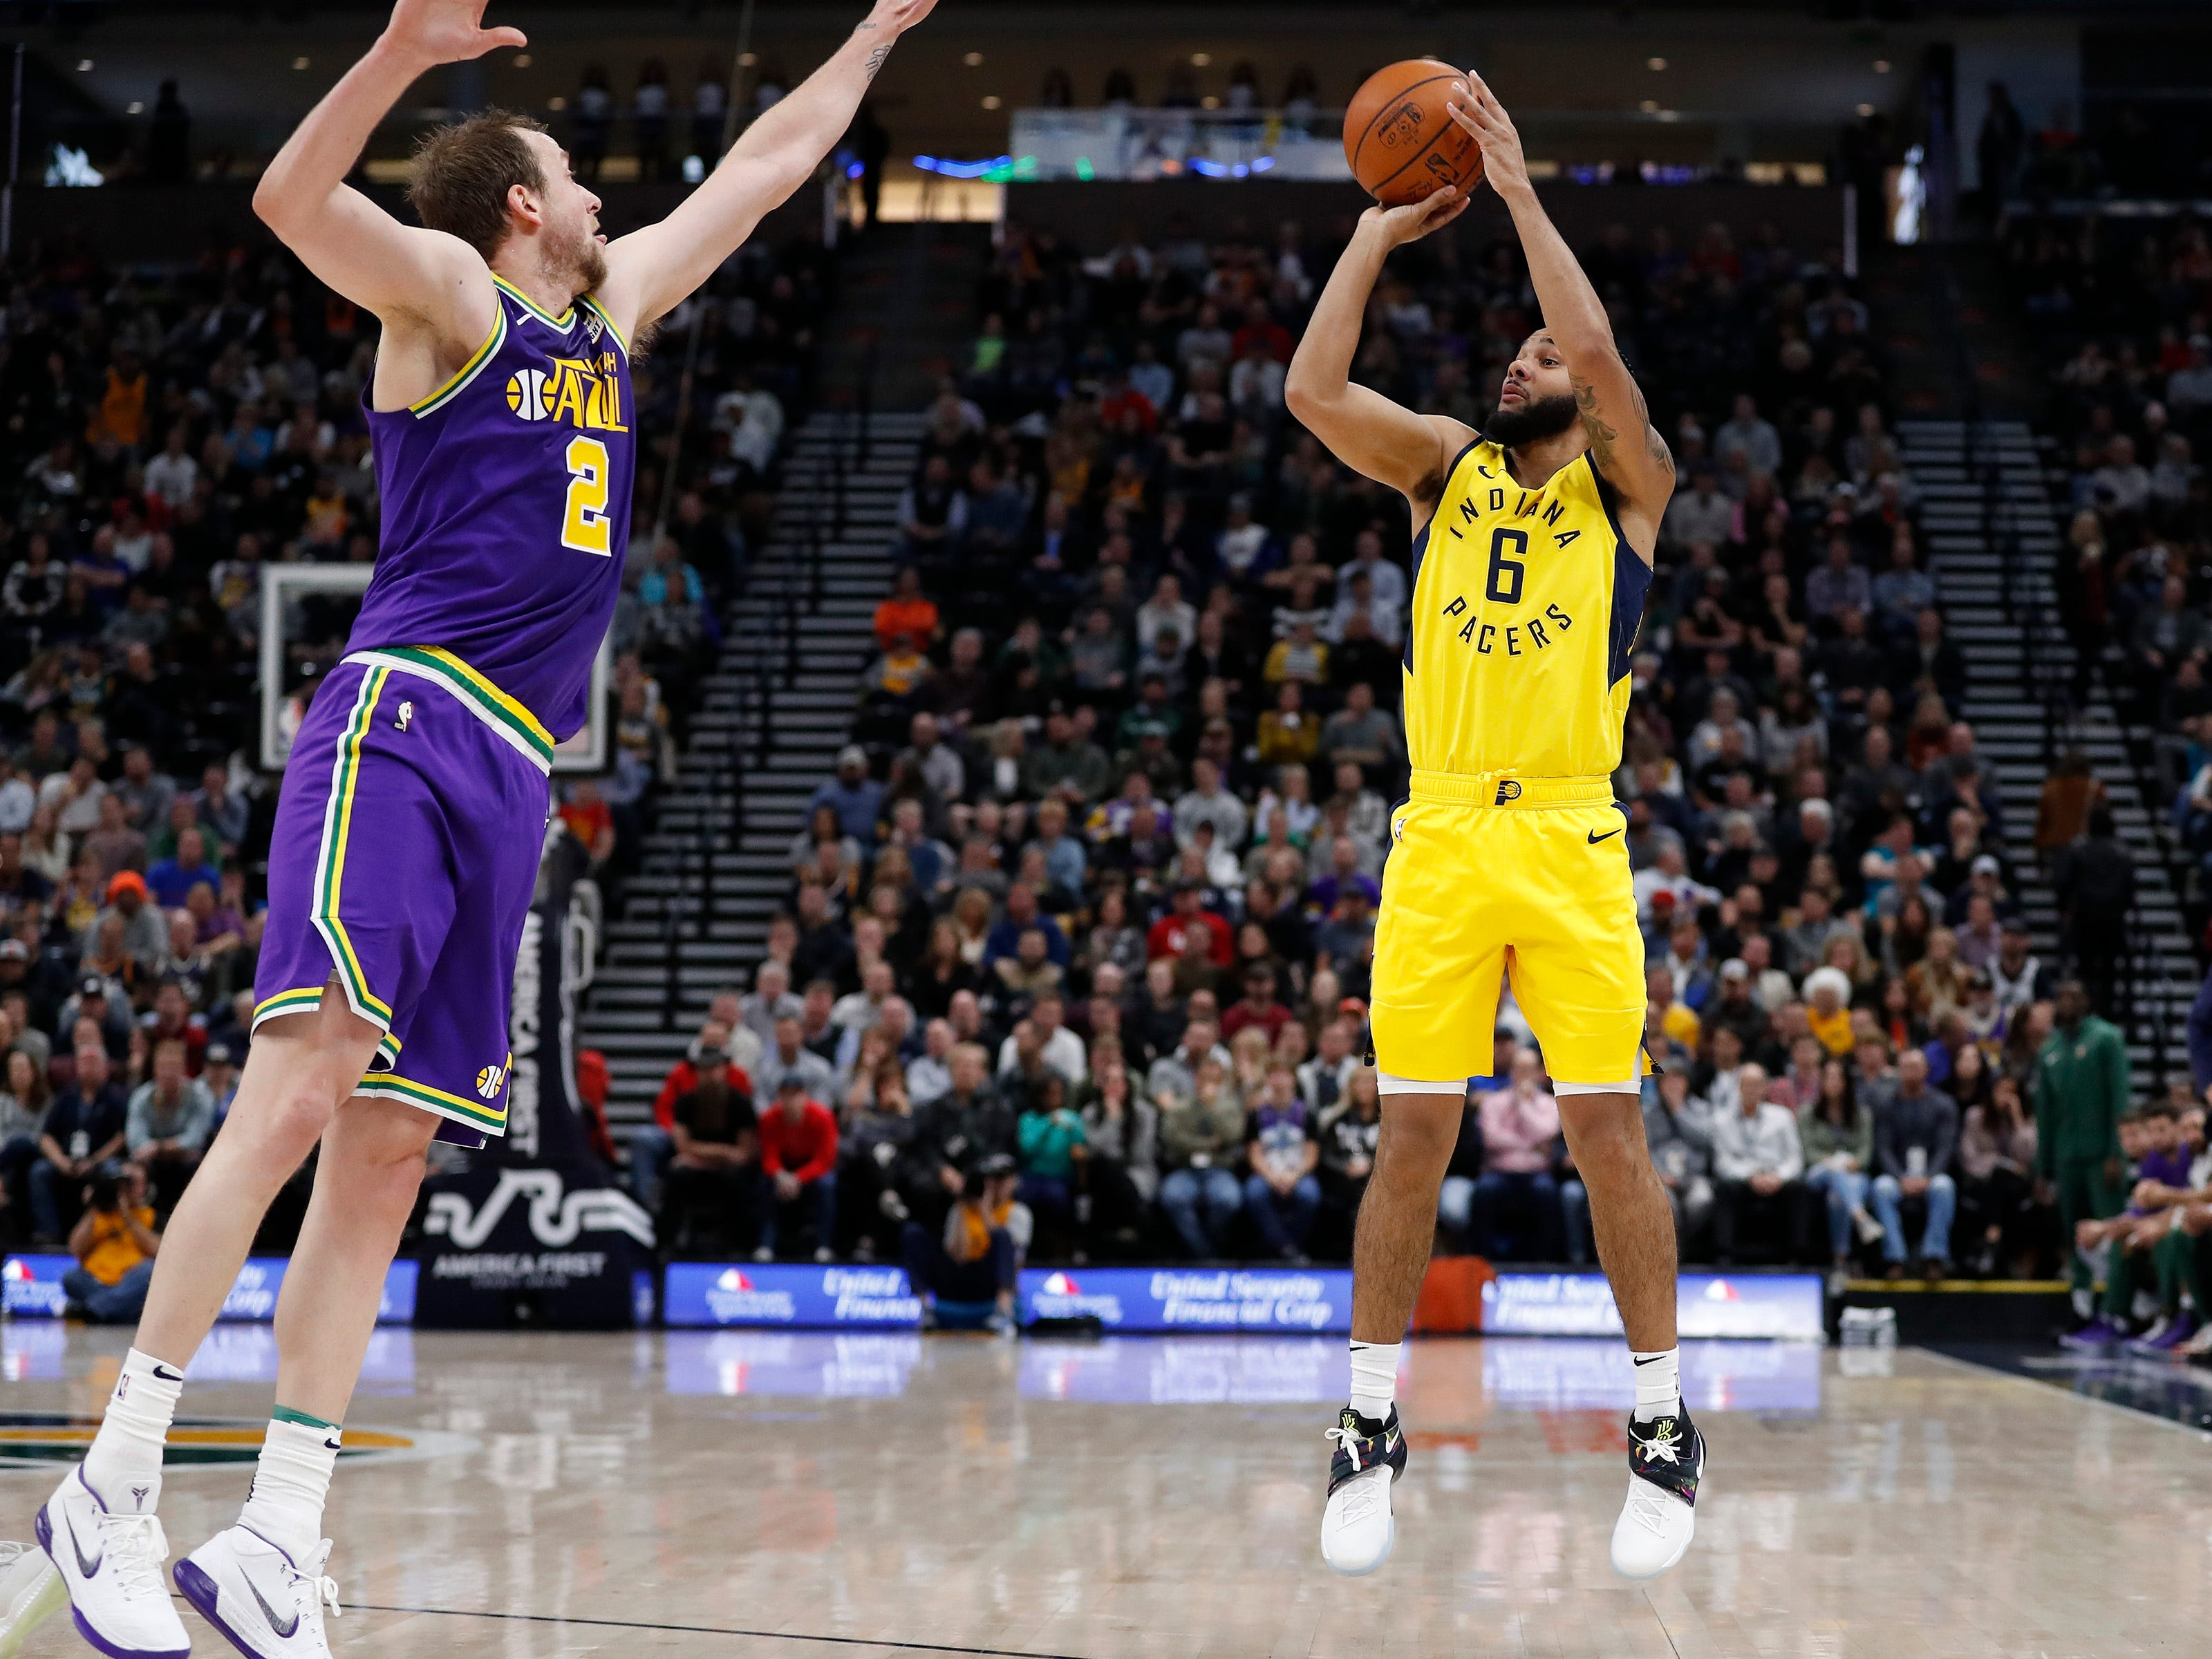 Indiana Pacers guard Cory Joseph (6) shoots a three-point shot against Utah Jazz forward Joe Ingles (2) in the second quarter at Vivint Smart Home Arena.